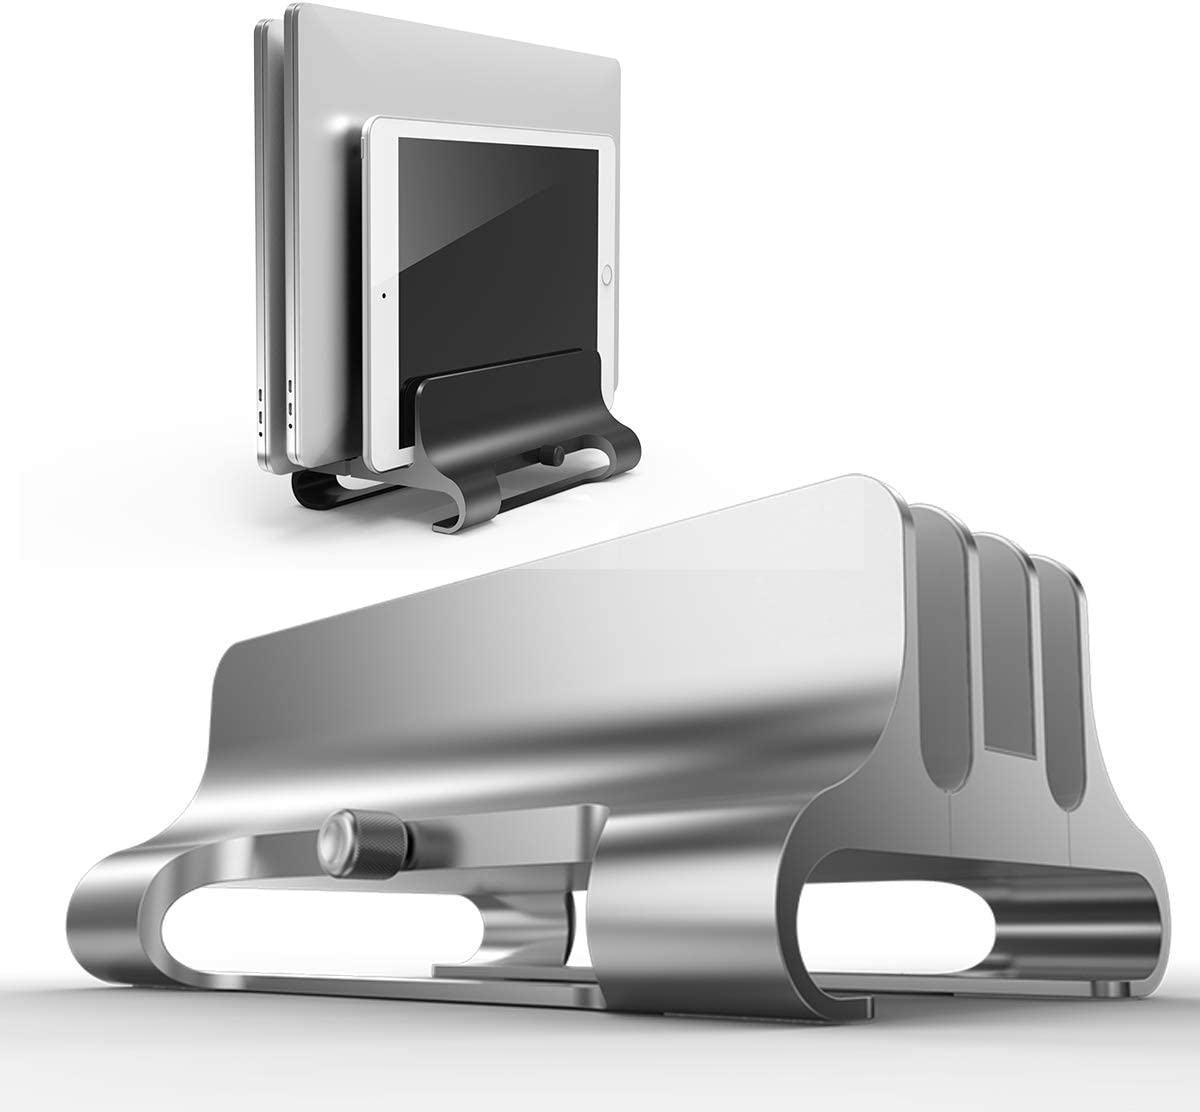 Elejolie MacBook Pro Vertical Max 71% OFF Opening large release sale Holder Laptop Stand 3 Slo